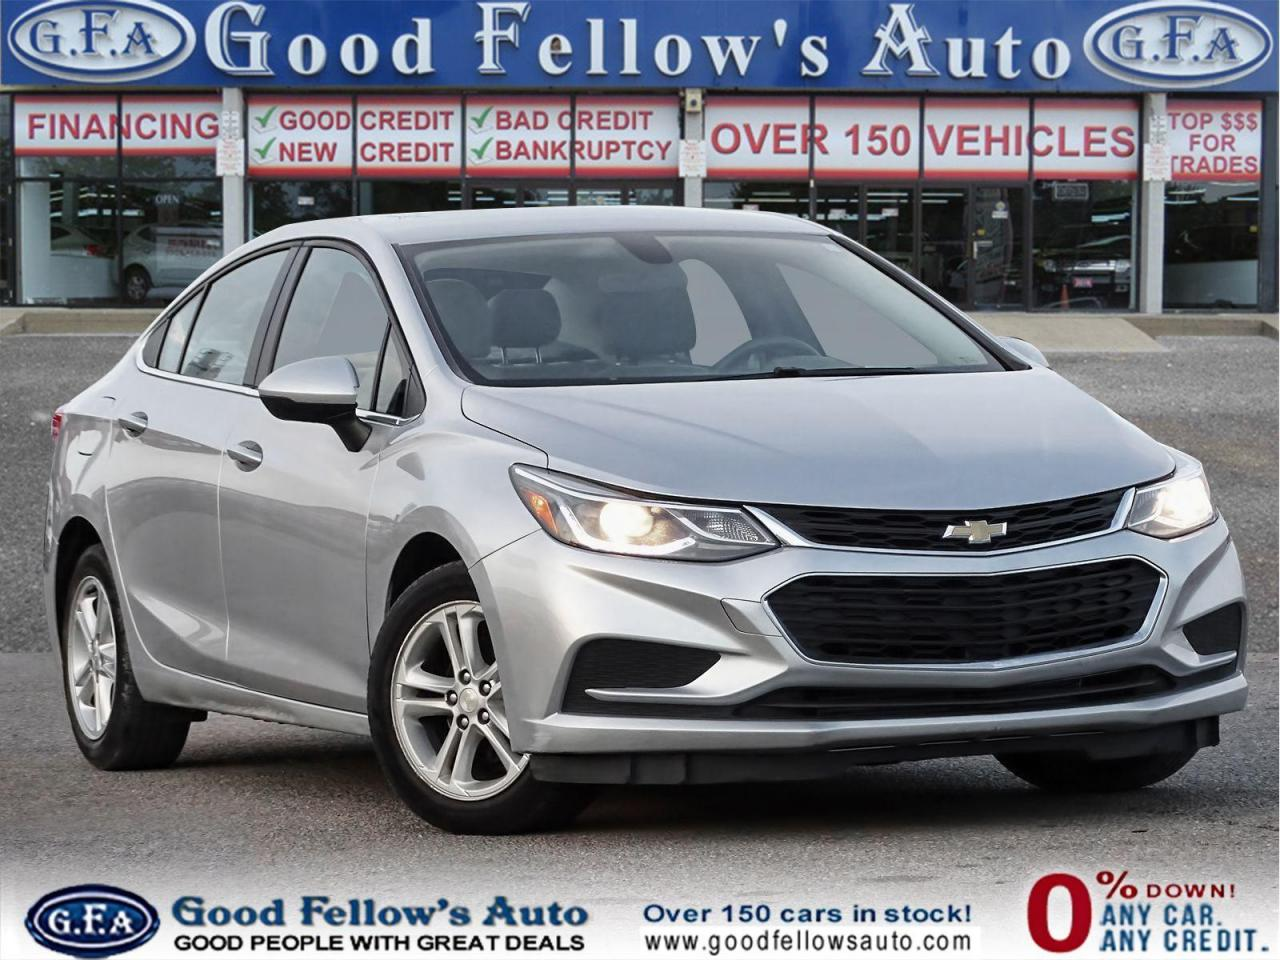 used 2017 Chevrolet Cruze car, priced at $12,400